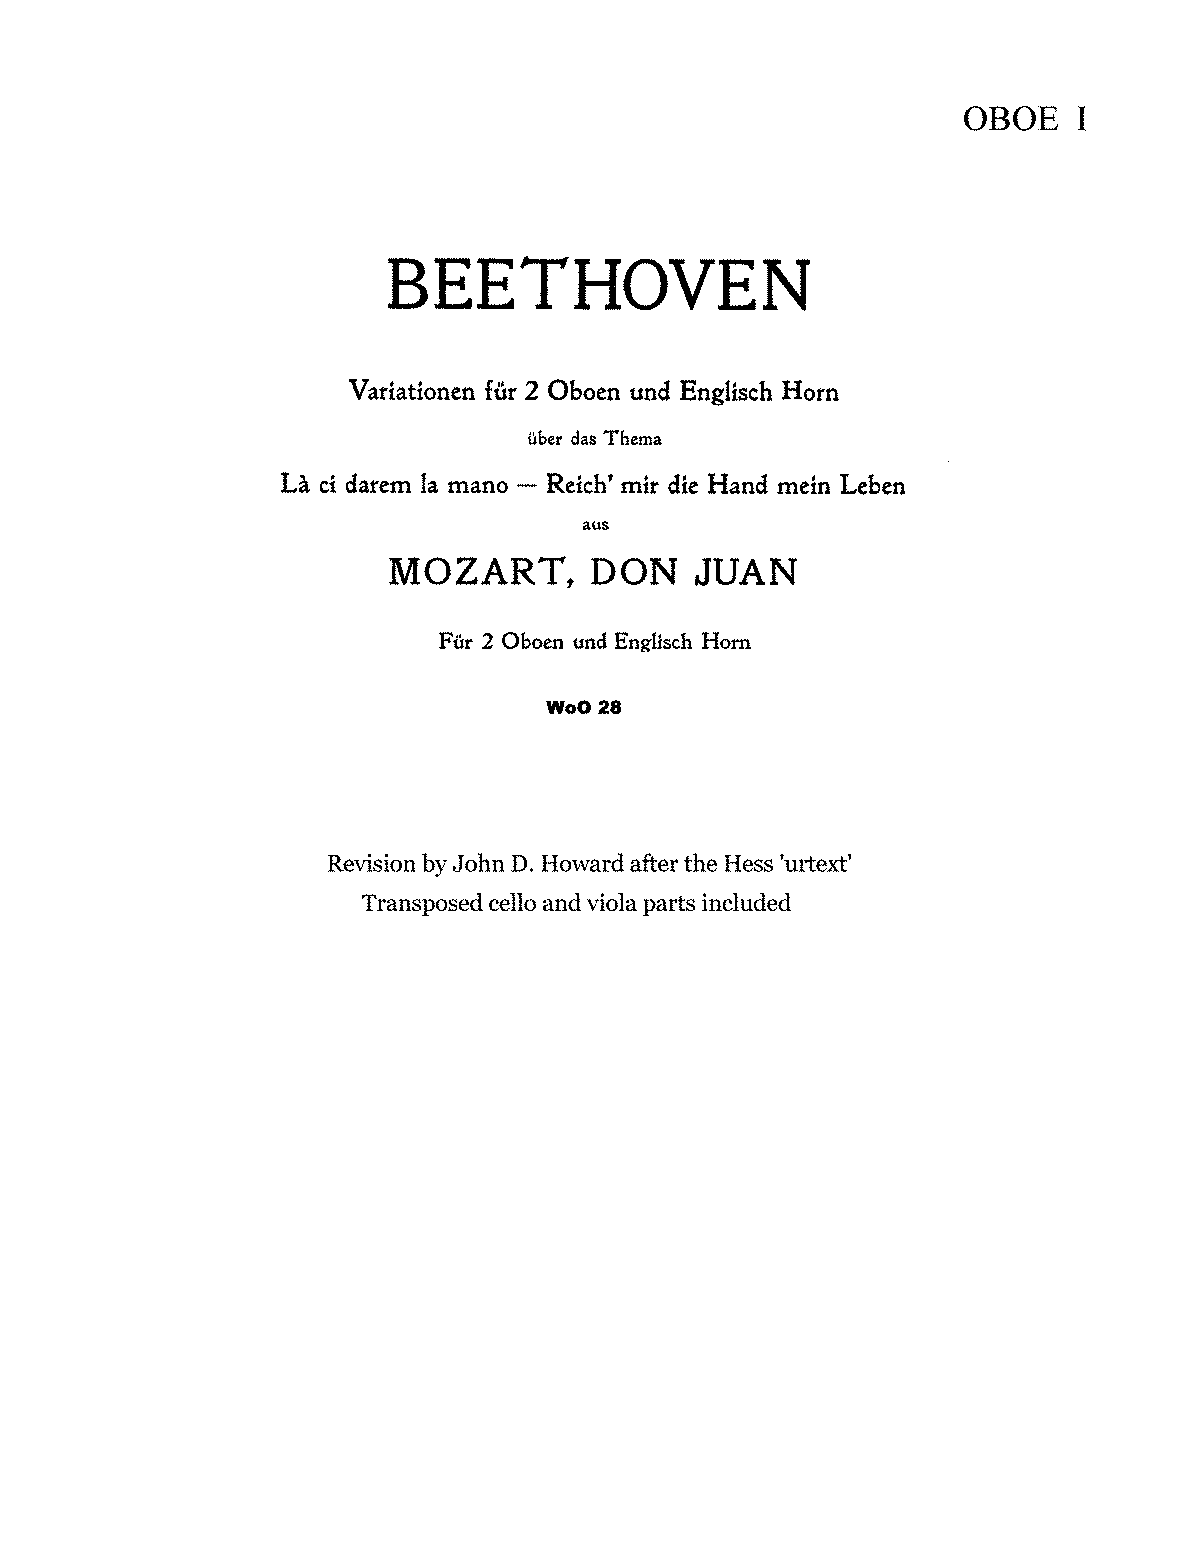 PMLP129027-BEETHOVEN Trio in C WoO 28 Oboes Eng Hrn after Hess.pdf